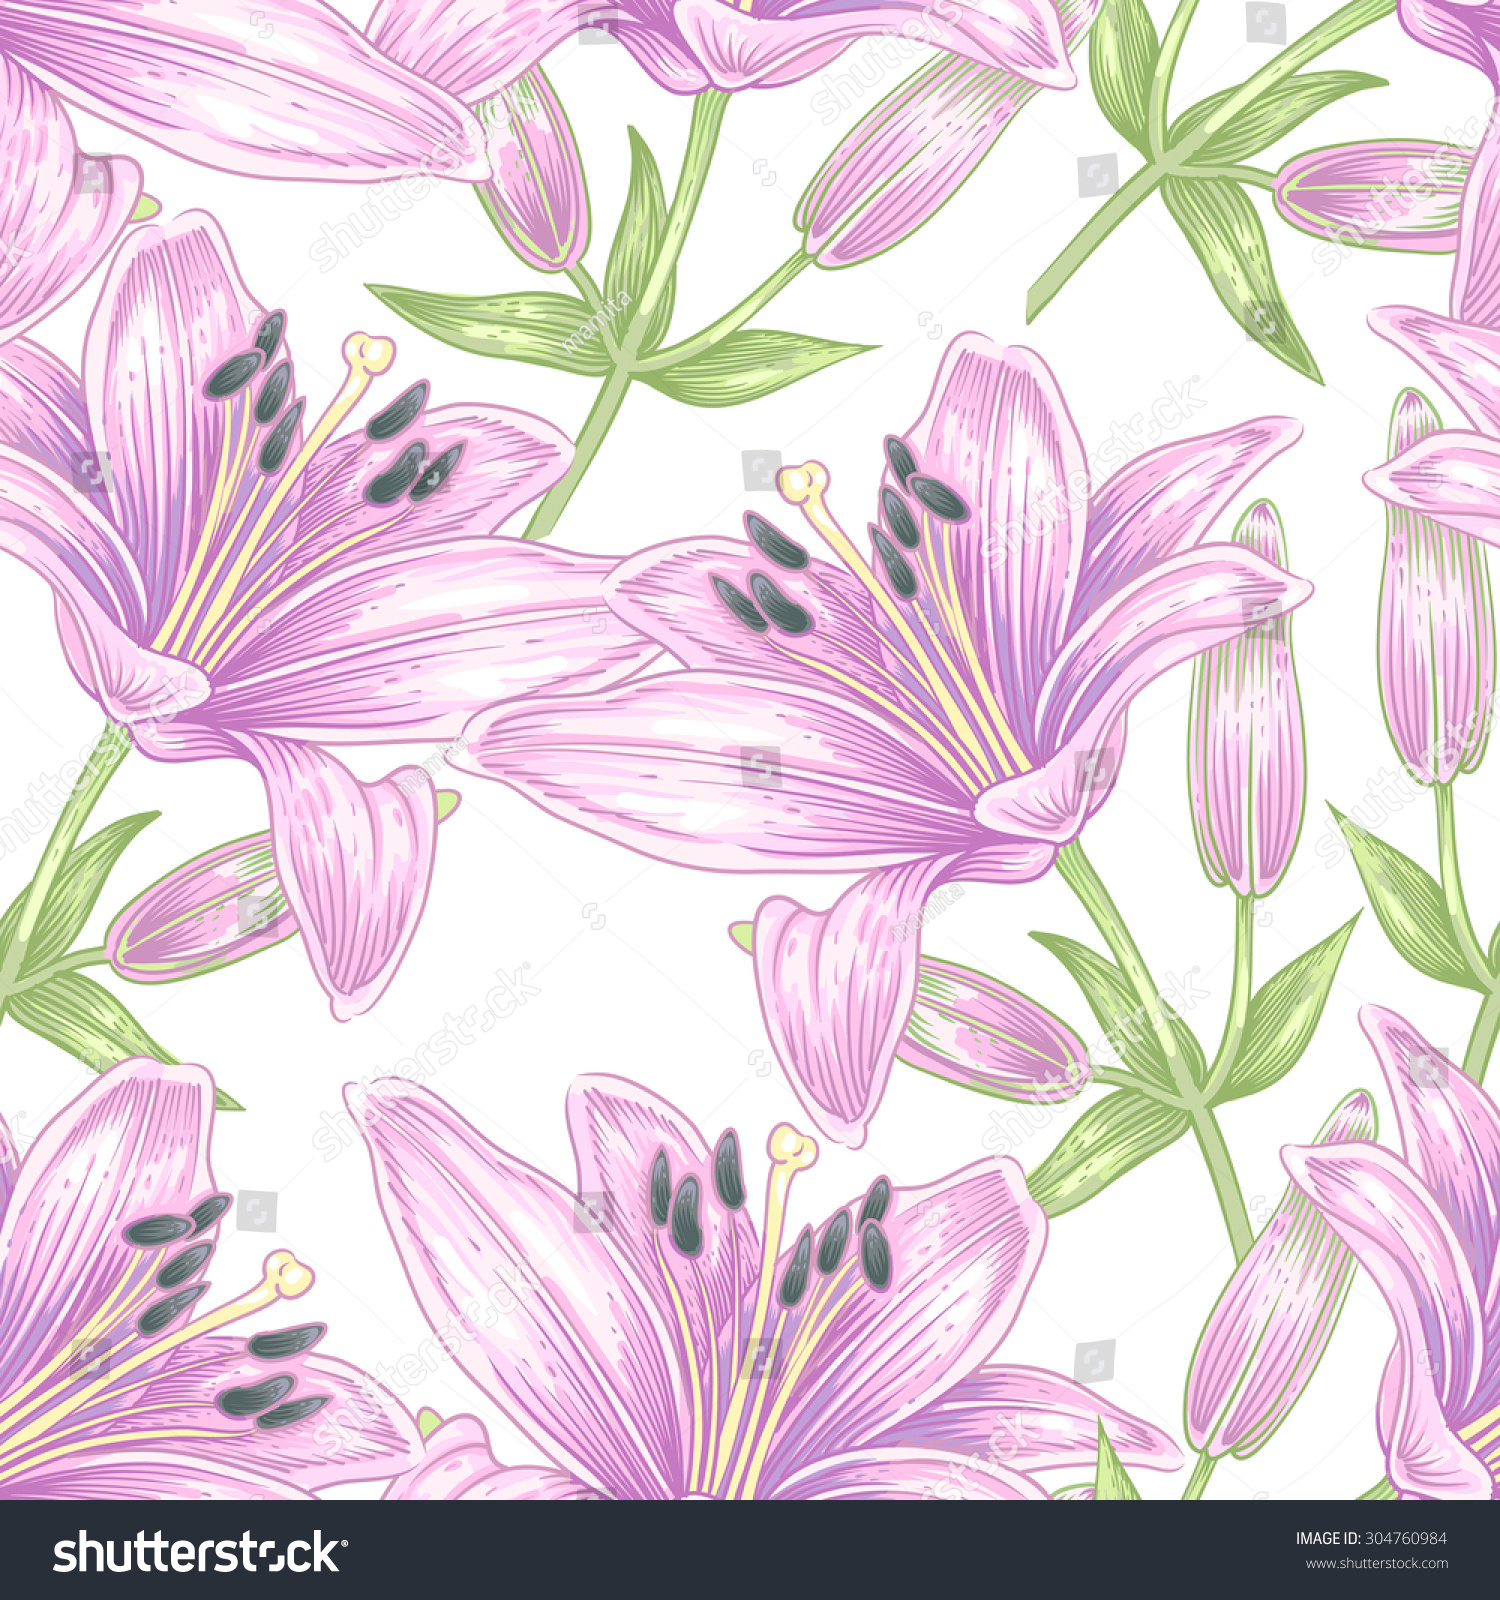 Seamless vector pattern illustration lily flowers stock vector illustration lily flowers designs for textiles upholstery fabric interior izmirmasajfo